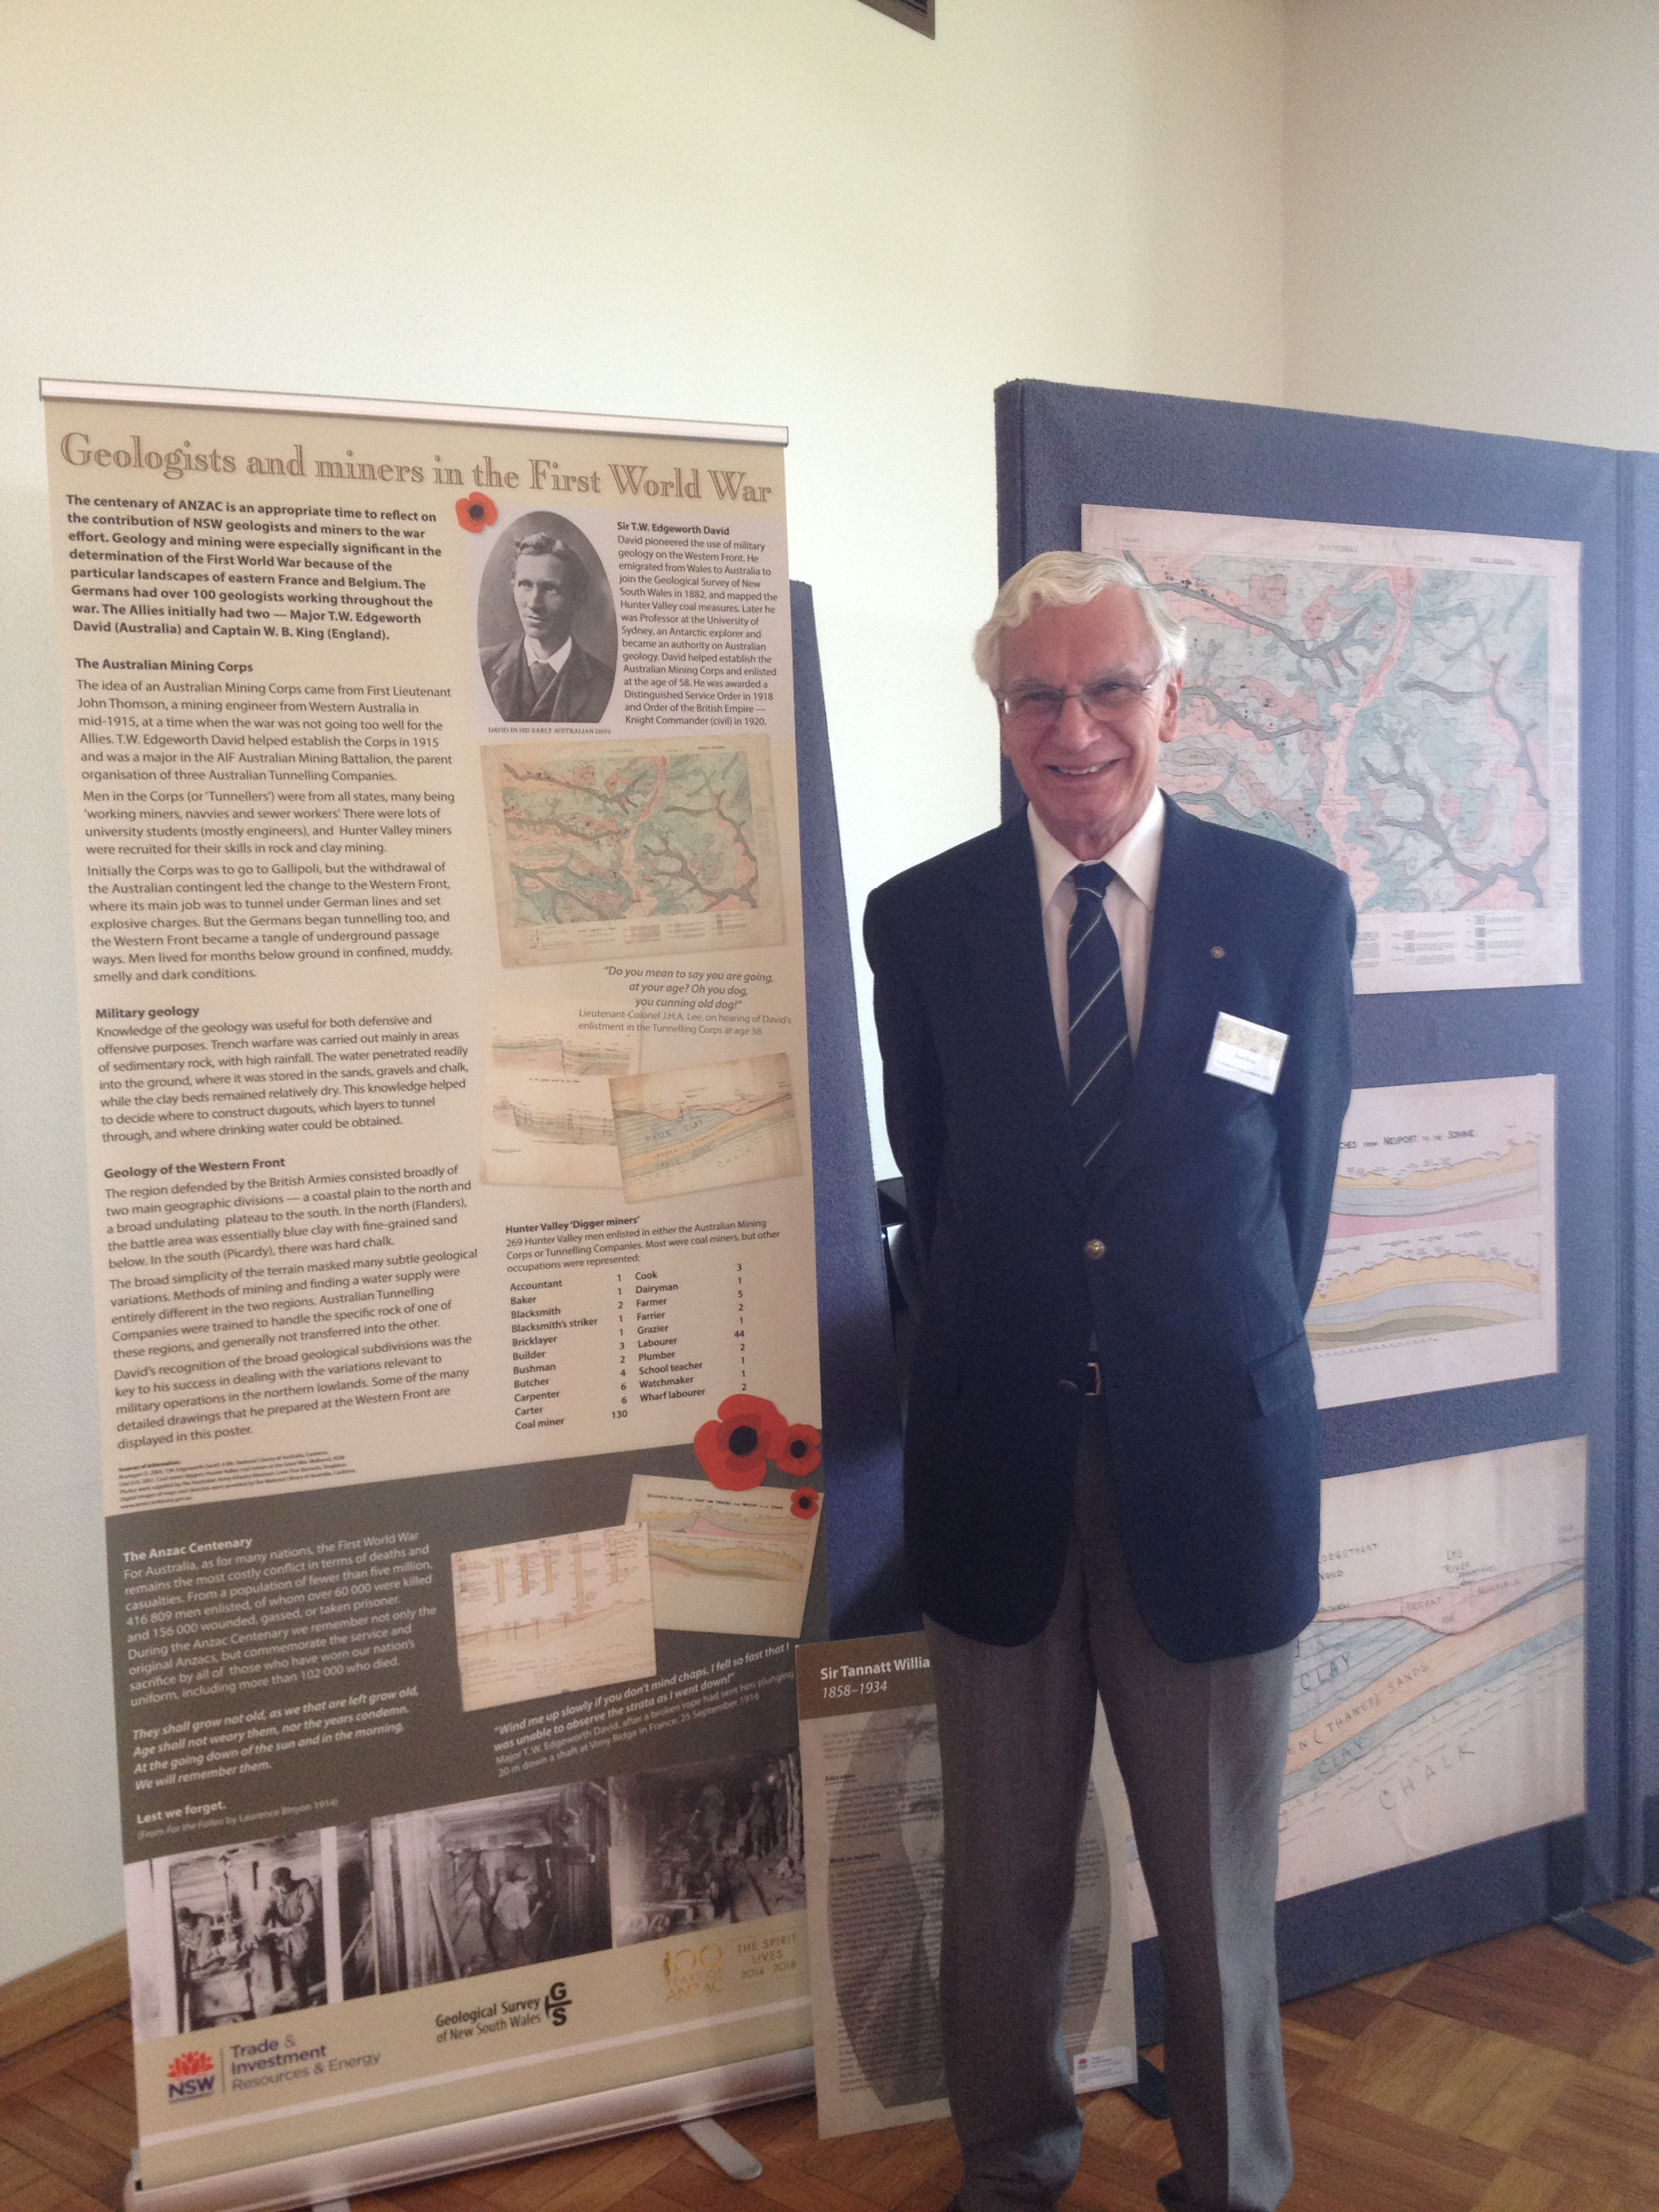 Dr Stuart Braga standing in front of the Geologist and Miners of the First World War display that included maps drawn by Edgeworth David